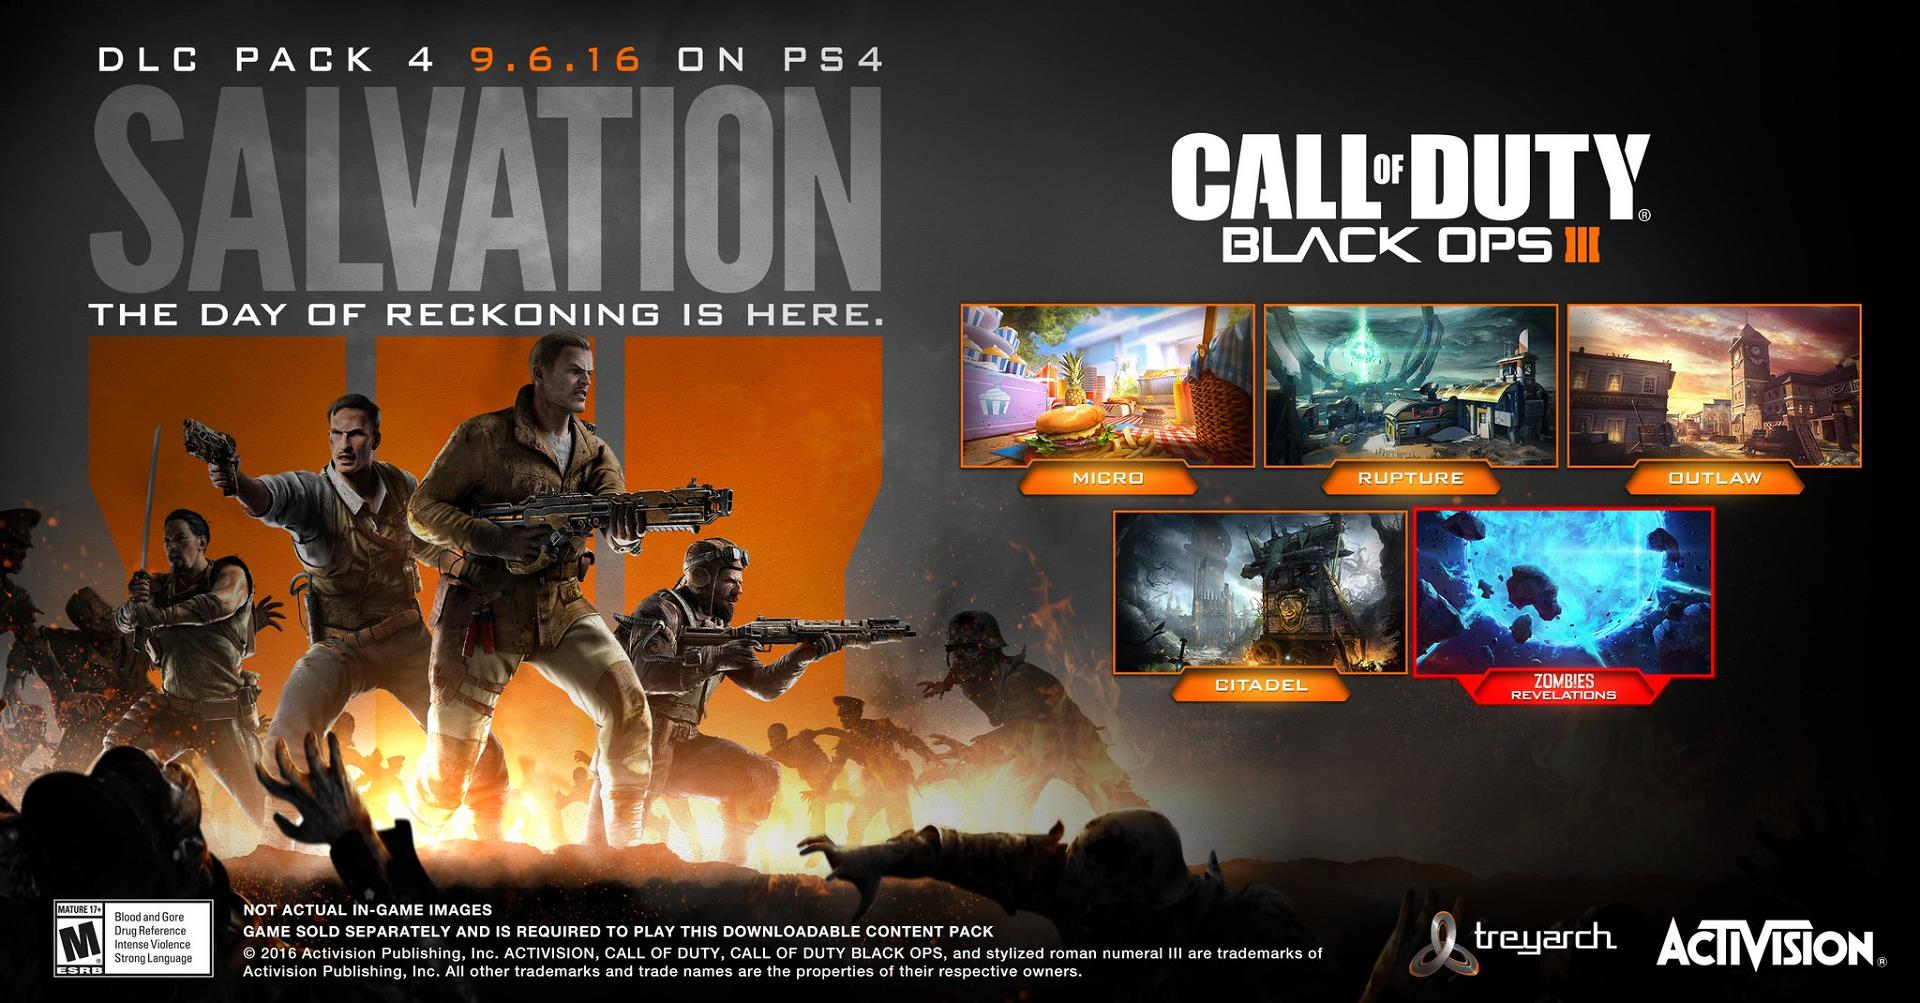 Call Of Duty Black Ops 3 Final Dlc Salvation Now Available On